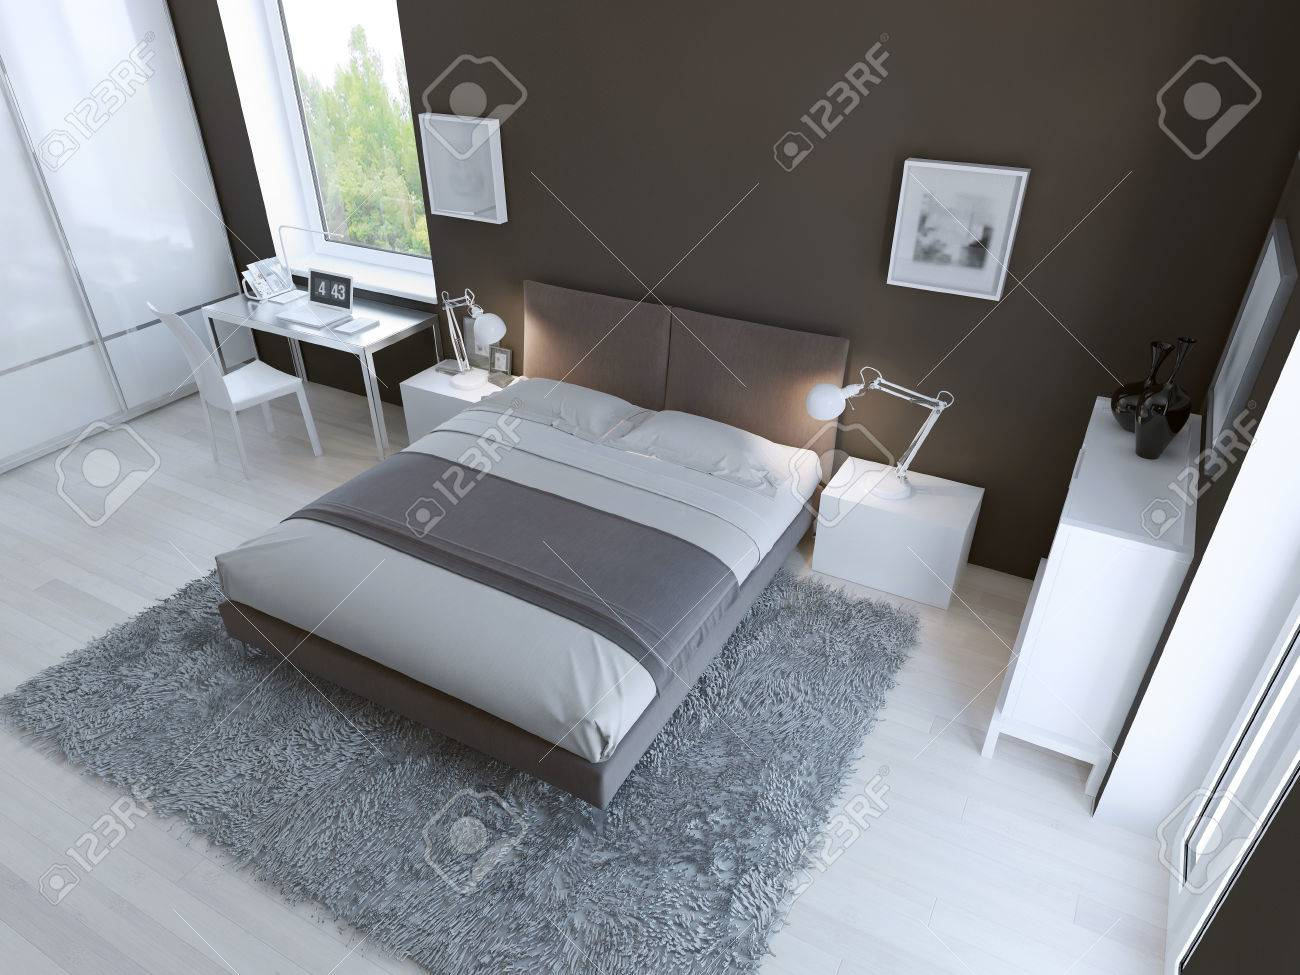 Hightech Bedroom Interior With Thick Pile Carpet Of Light Grey - High tech bedroom design